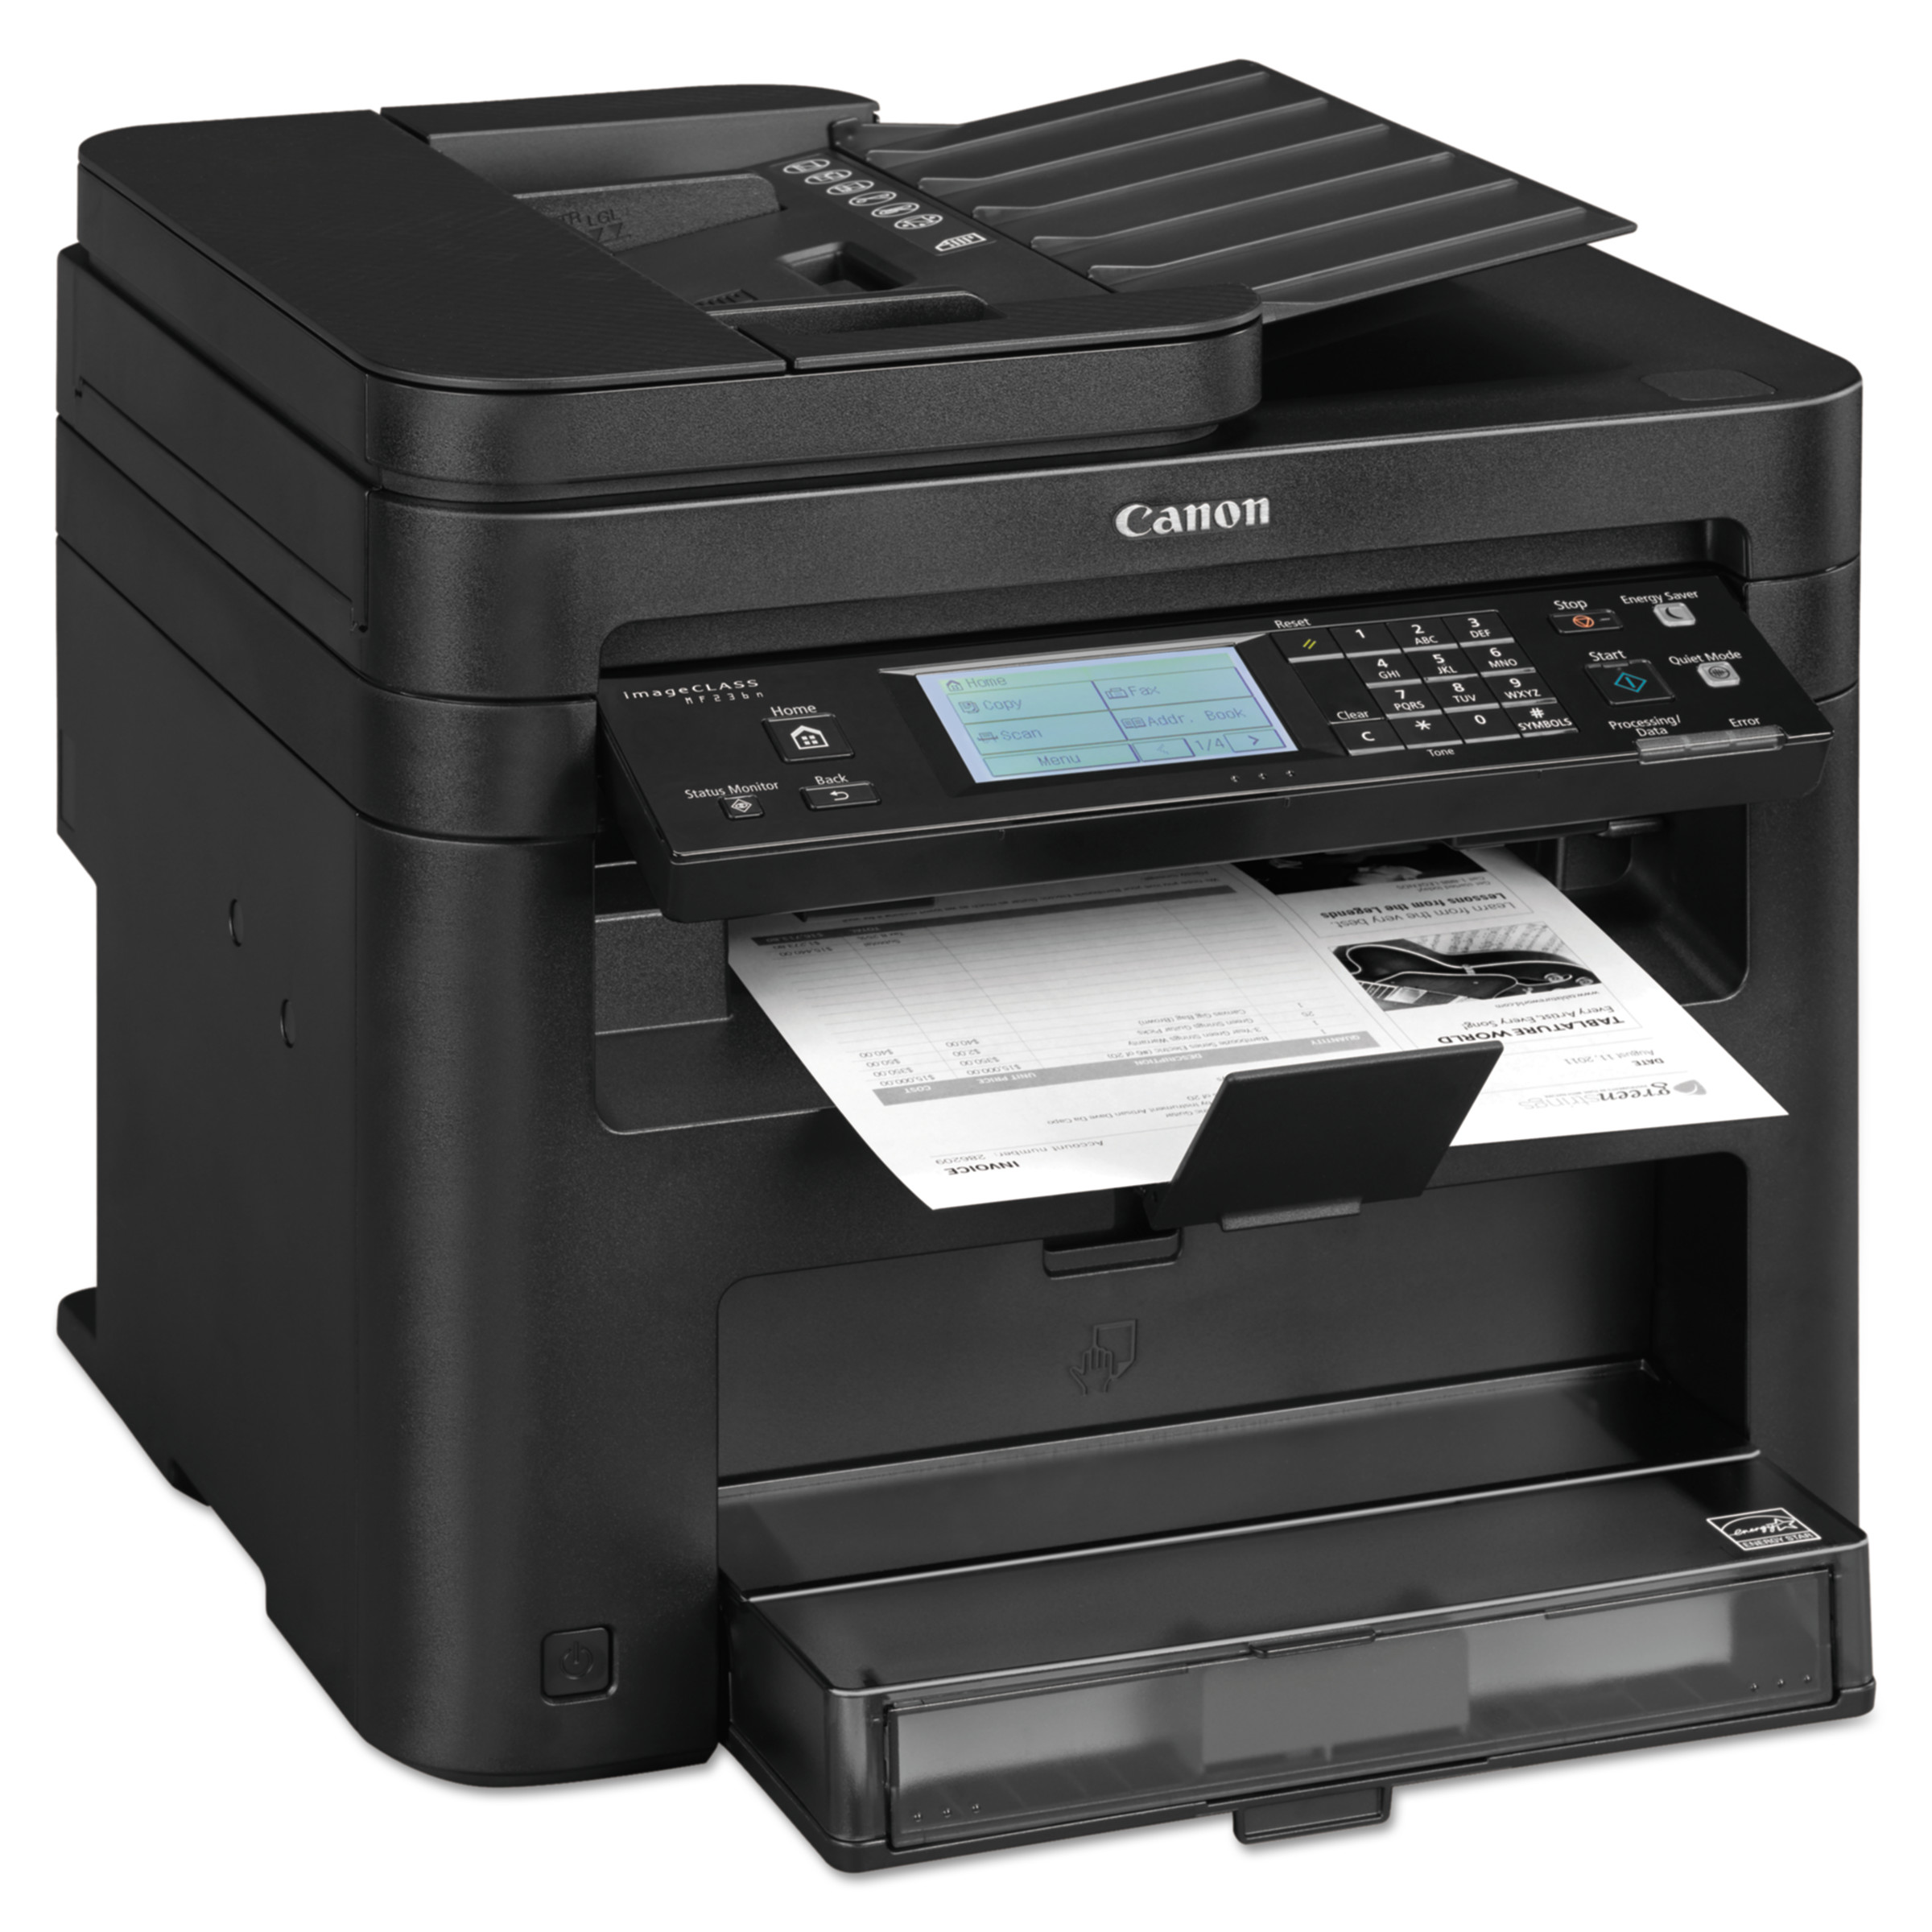 Canon imageCLASS MF236n Monochrome Multifunction Laser Printer, Copy; Fax; Print; Scan